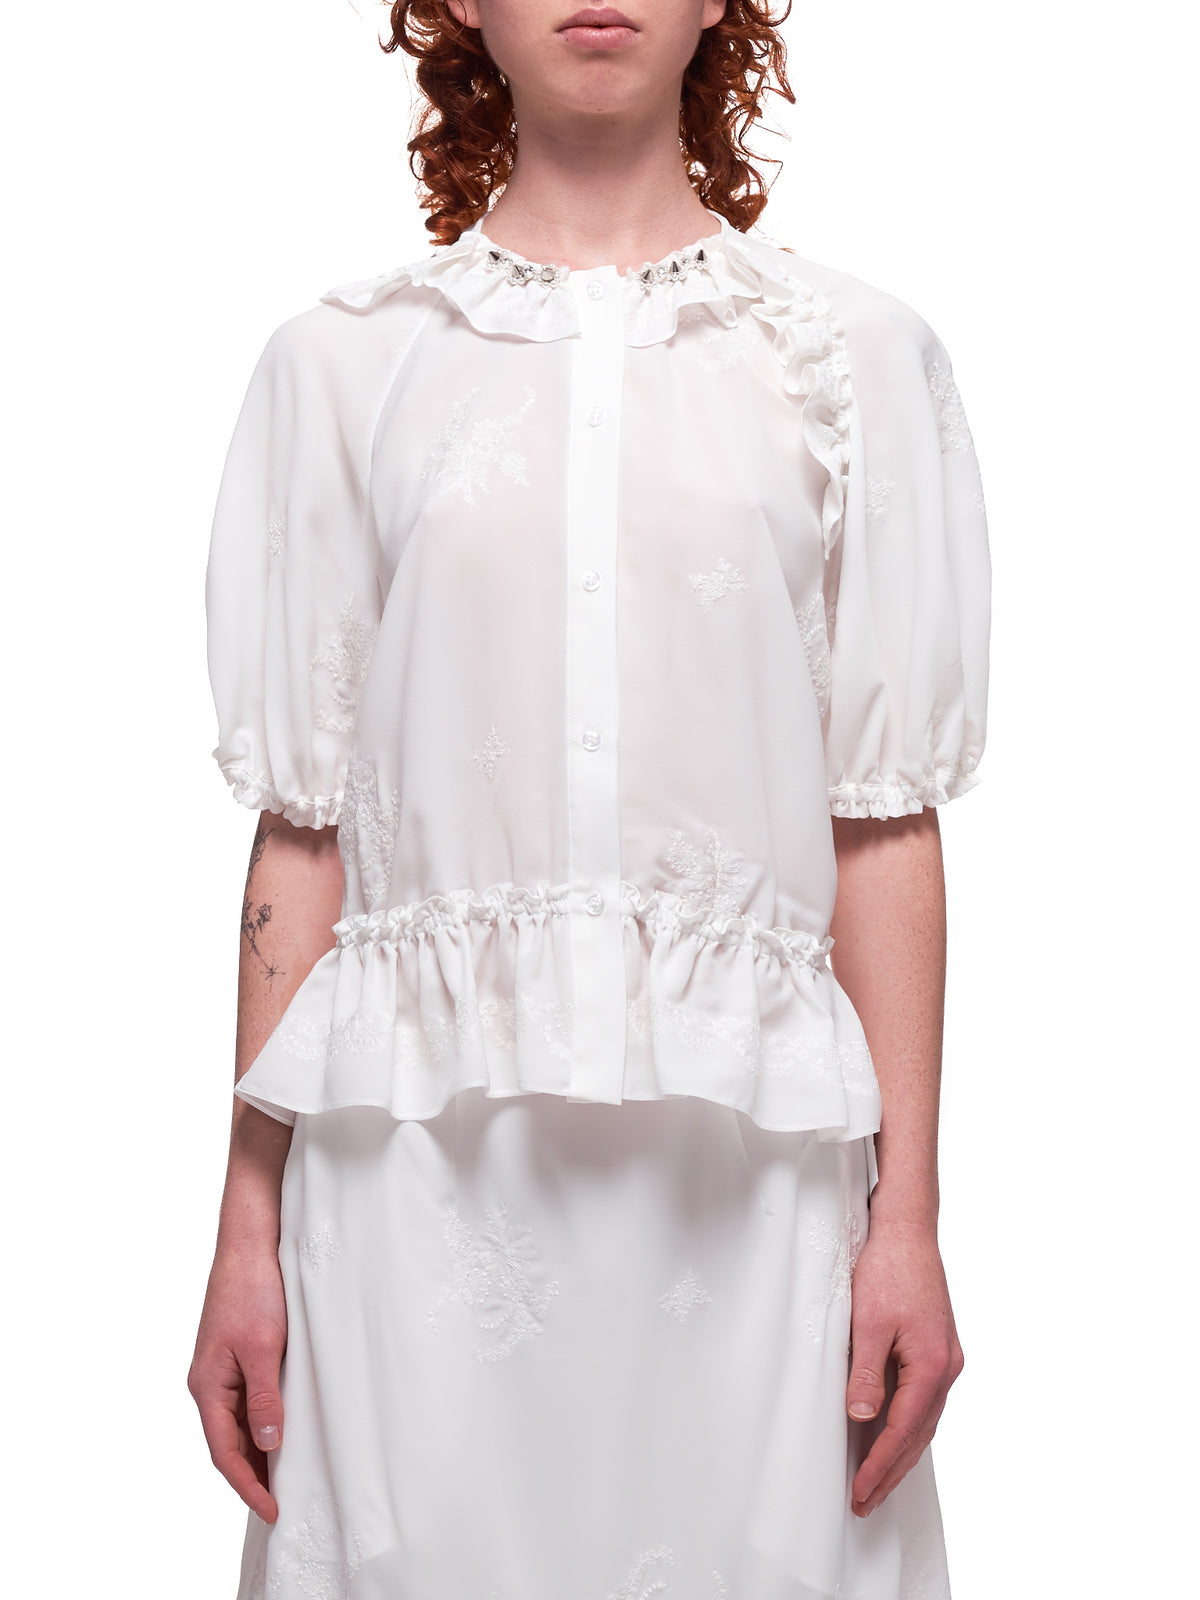 Bubble Button-Up Blouse (3576B-0369-IVORY-PEARL-CLEAR)